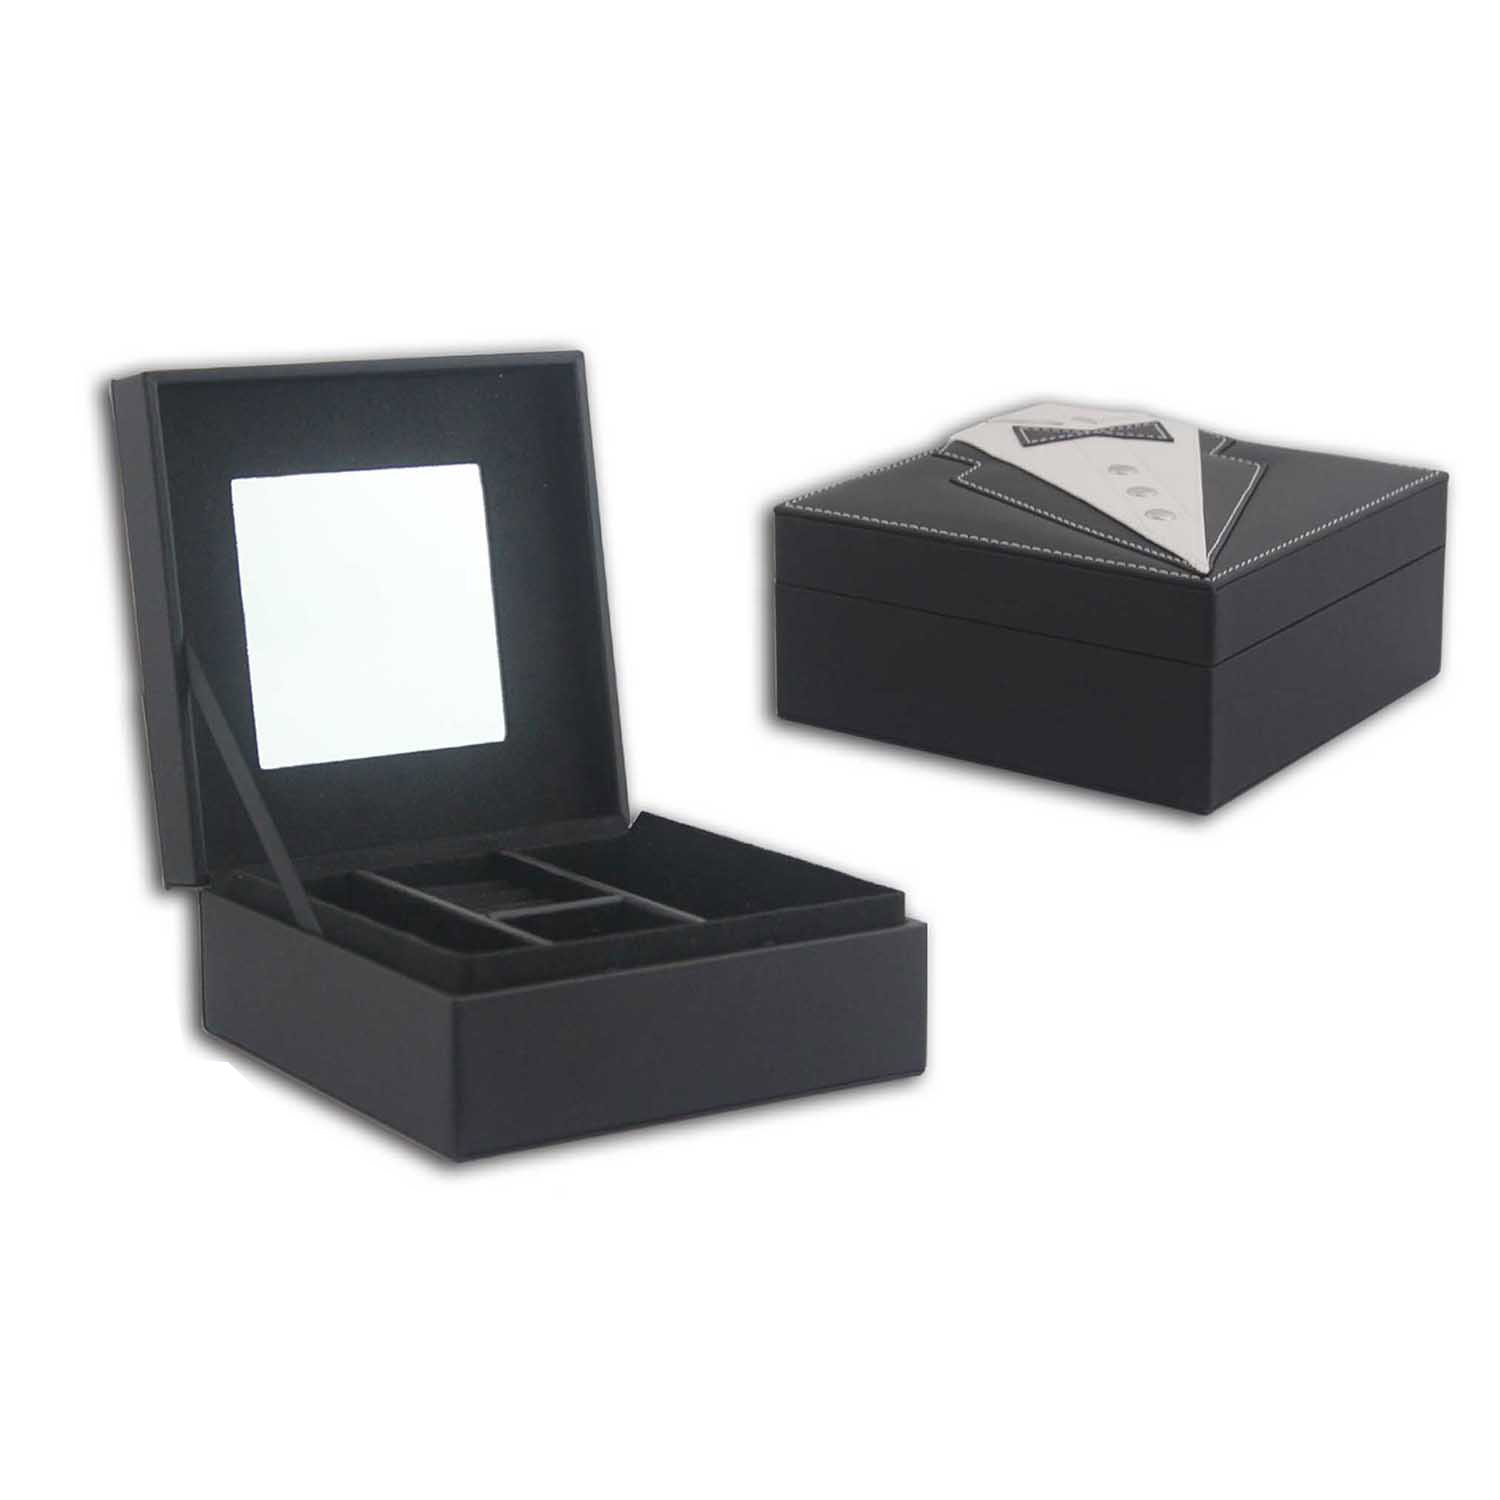 Unique design bow-tie pattern PU jewelry display box